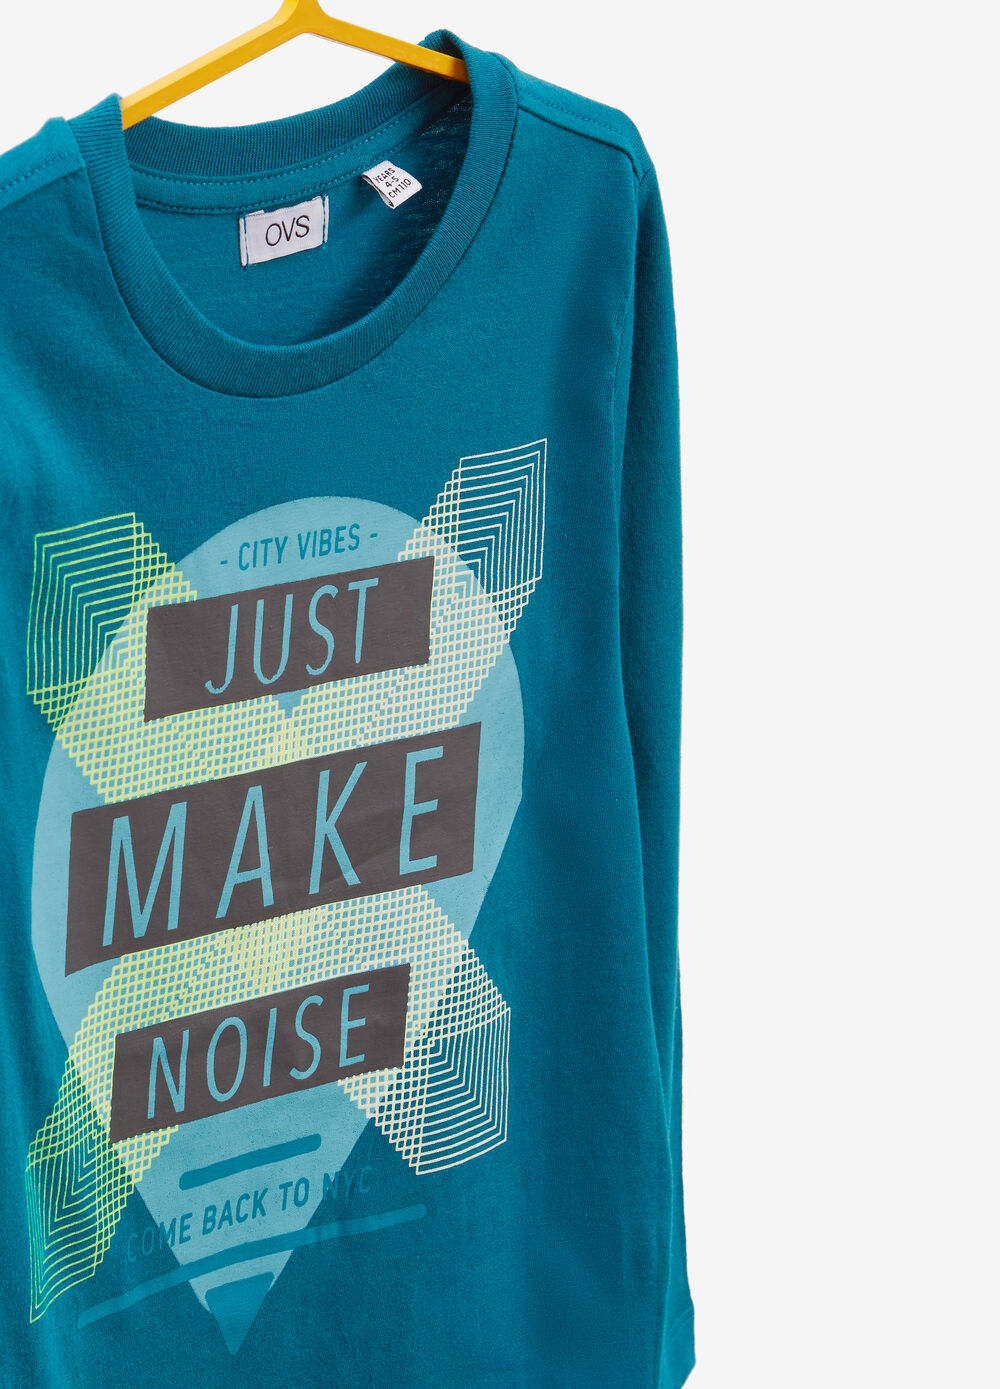 Long-sleeved cotton T-shirt with lettering